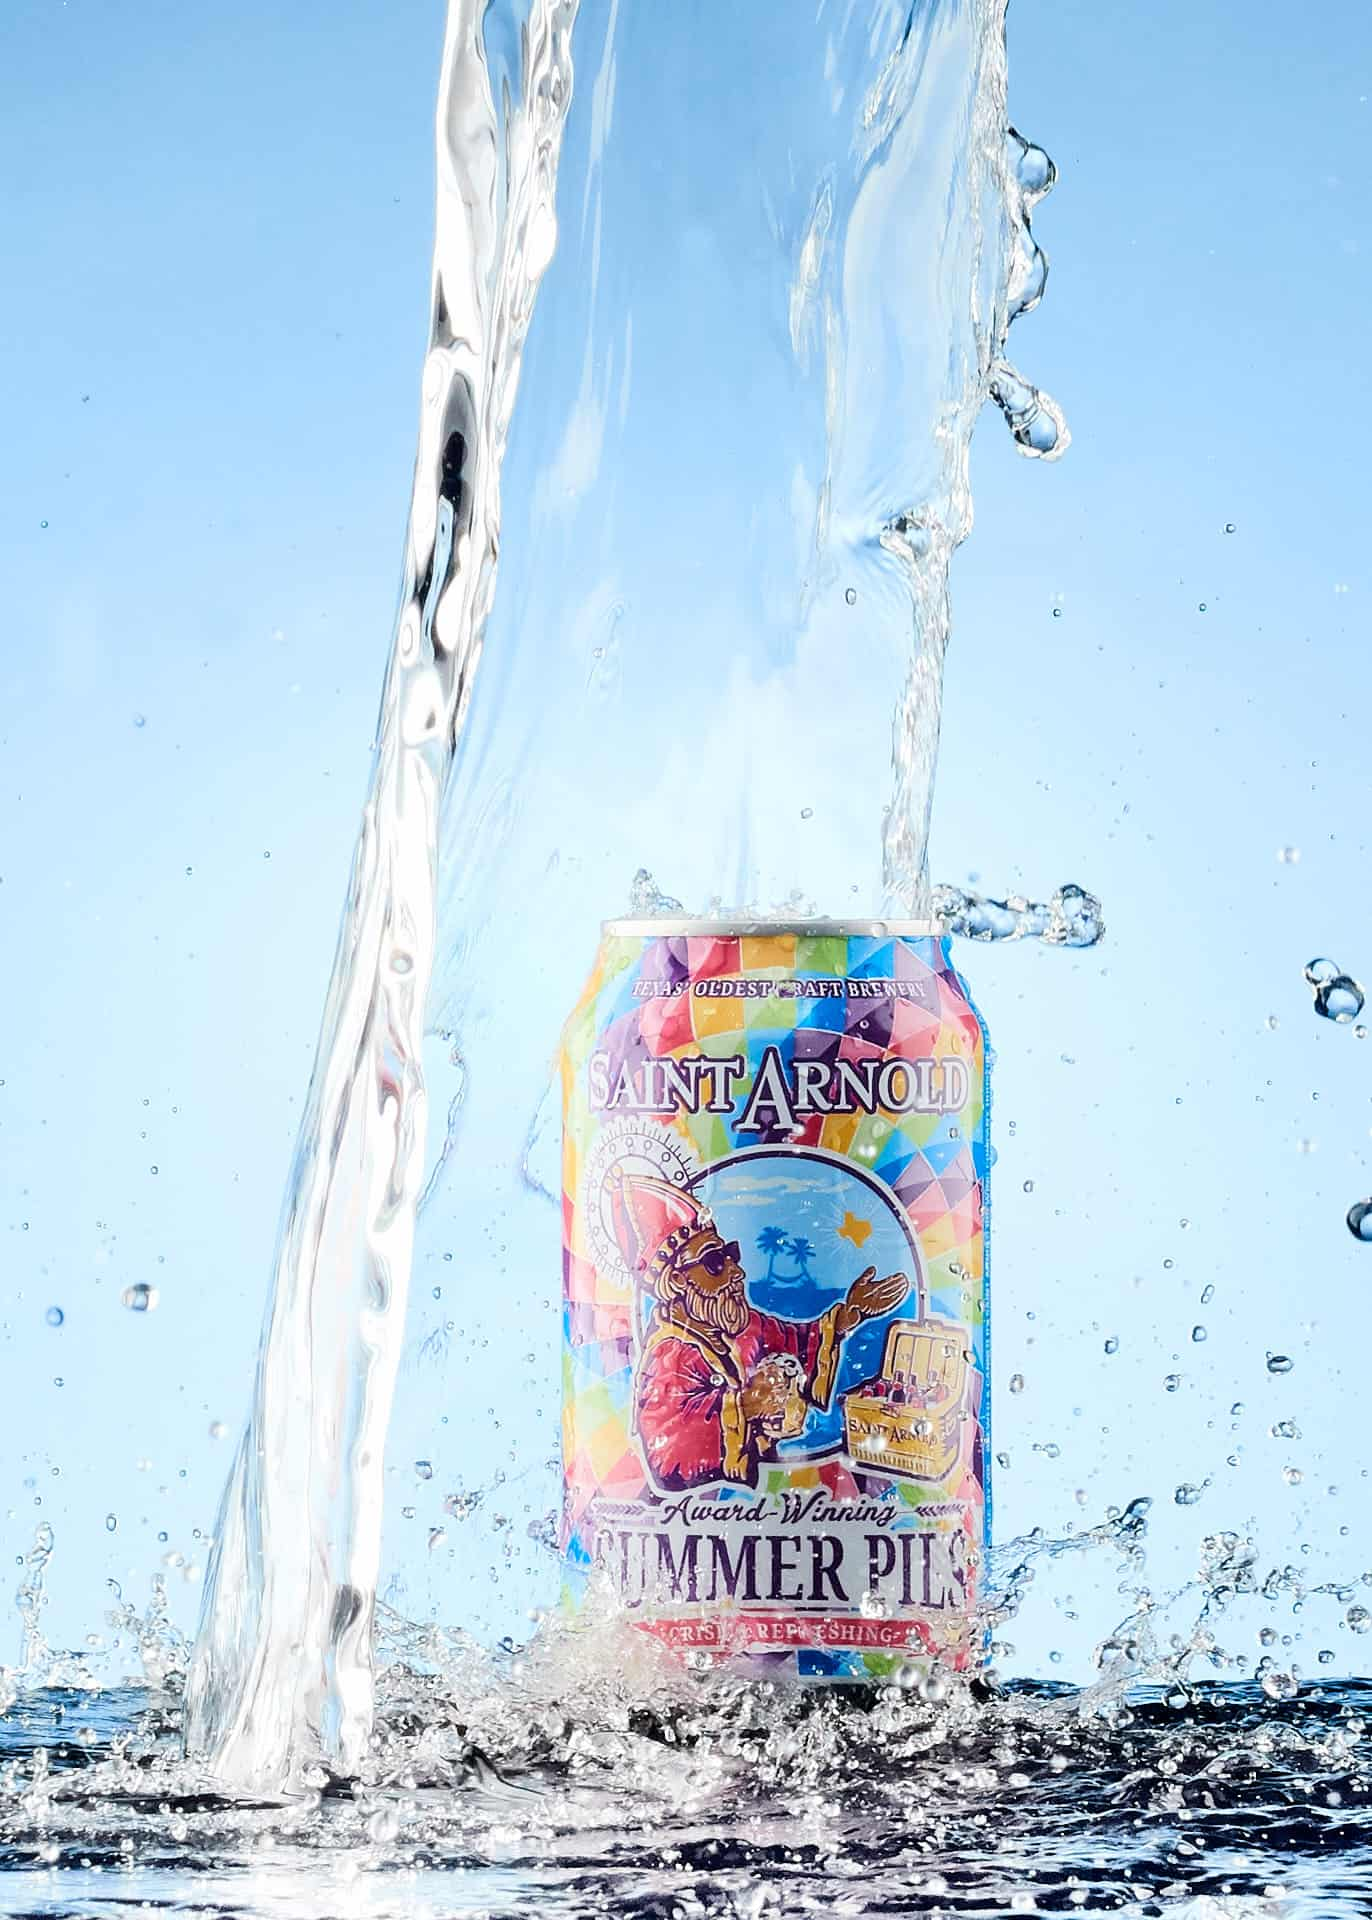 Saint Arnold Beer splashed with water.